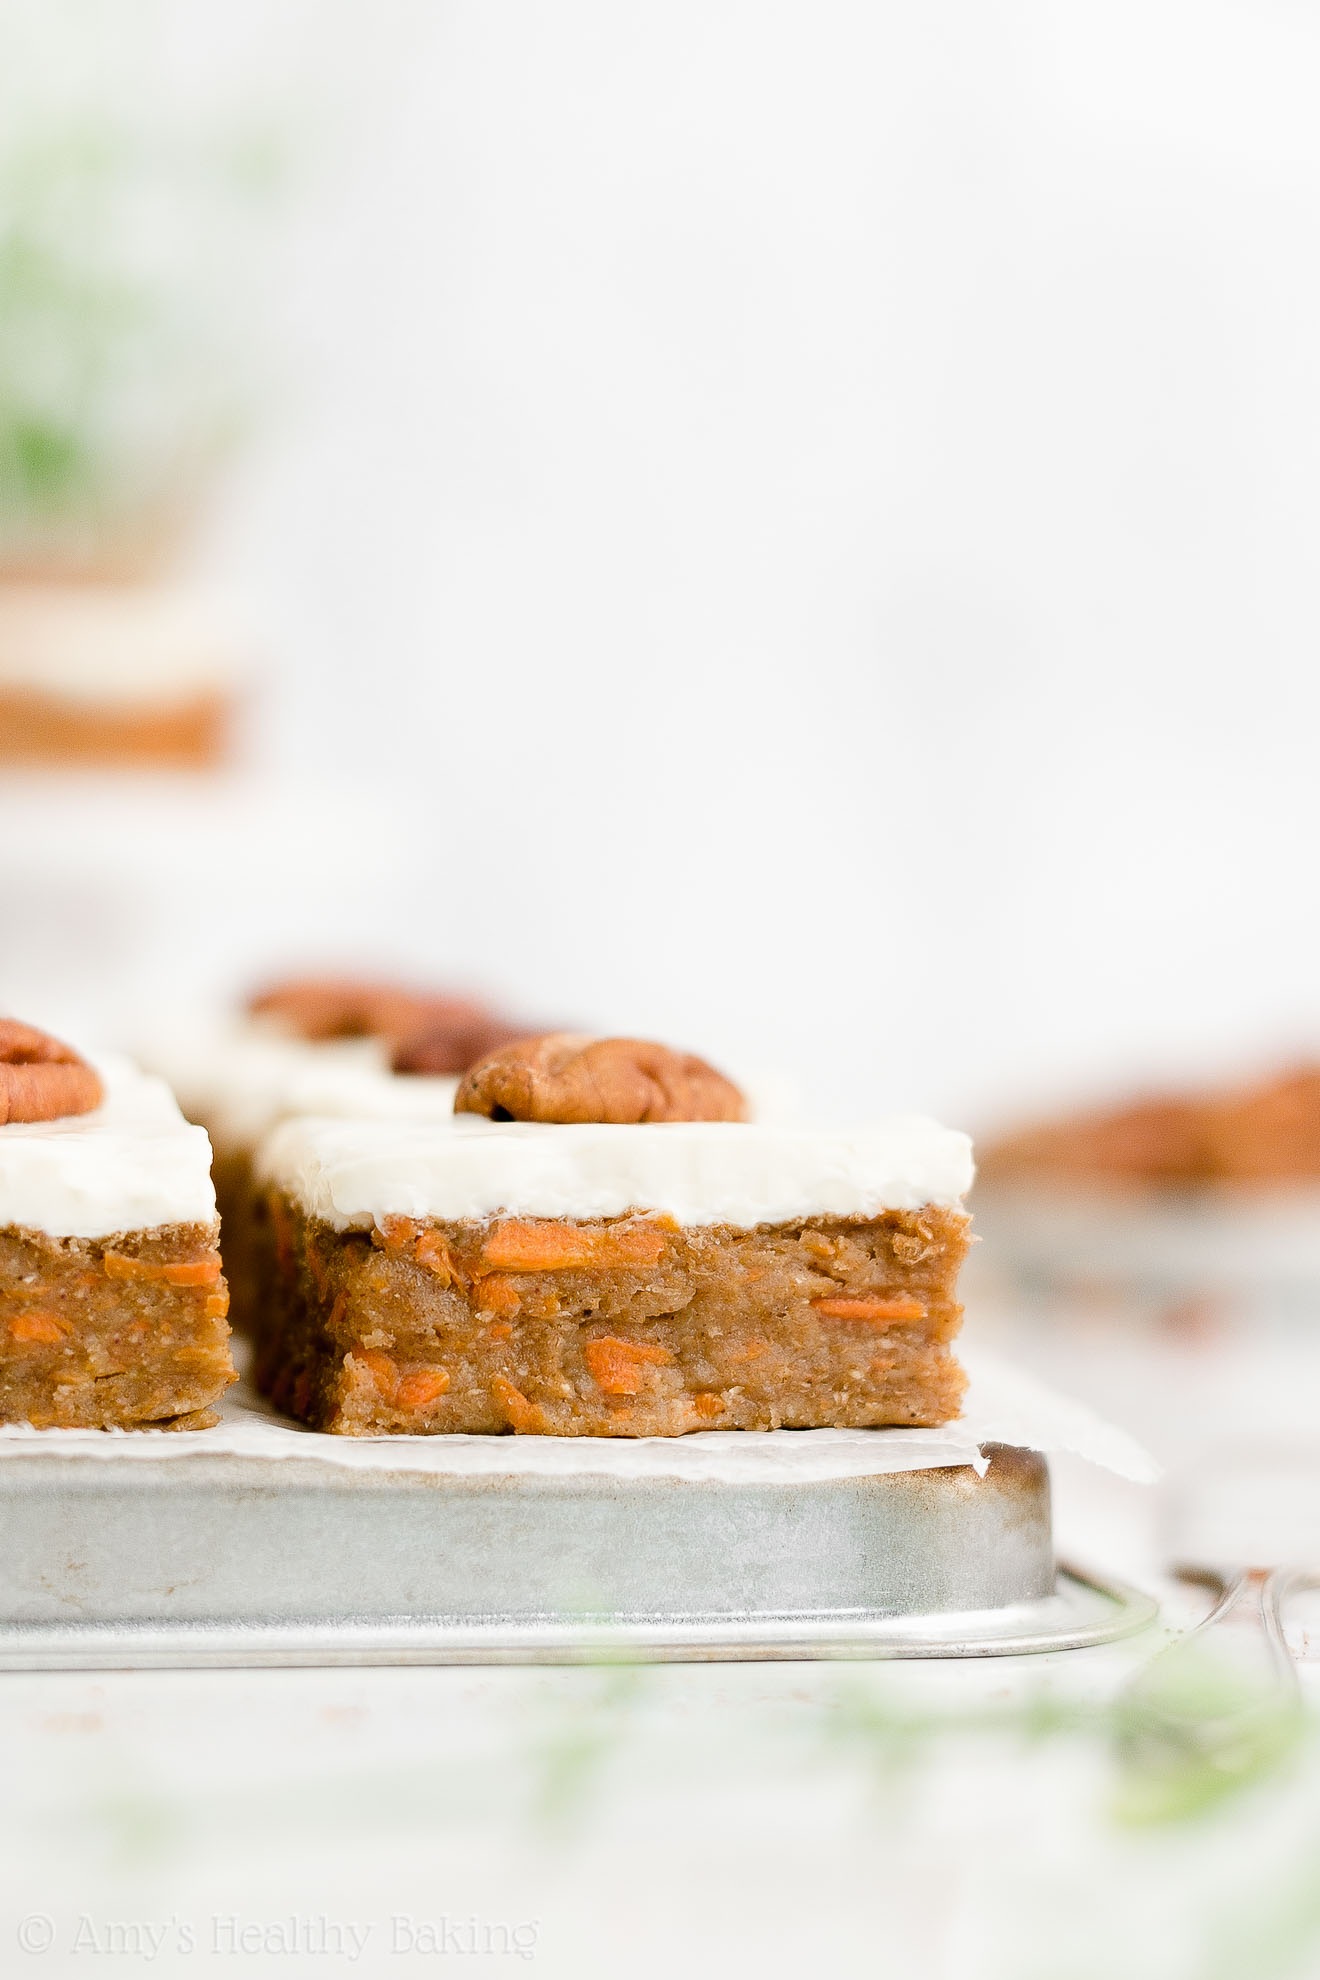 Easy Healthy Homemade Gluten Free No Sugar Moist Chewy Carrot Cake Bars